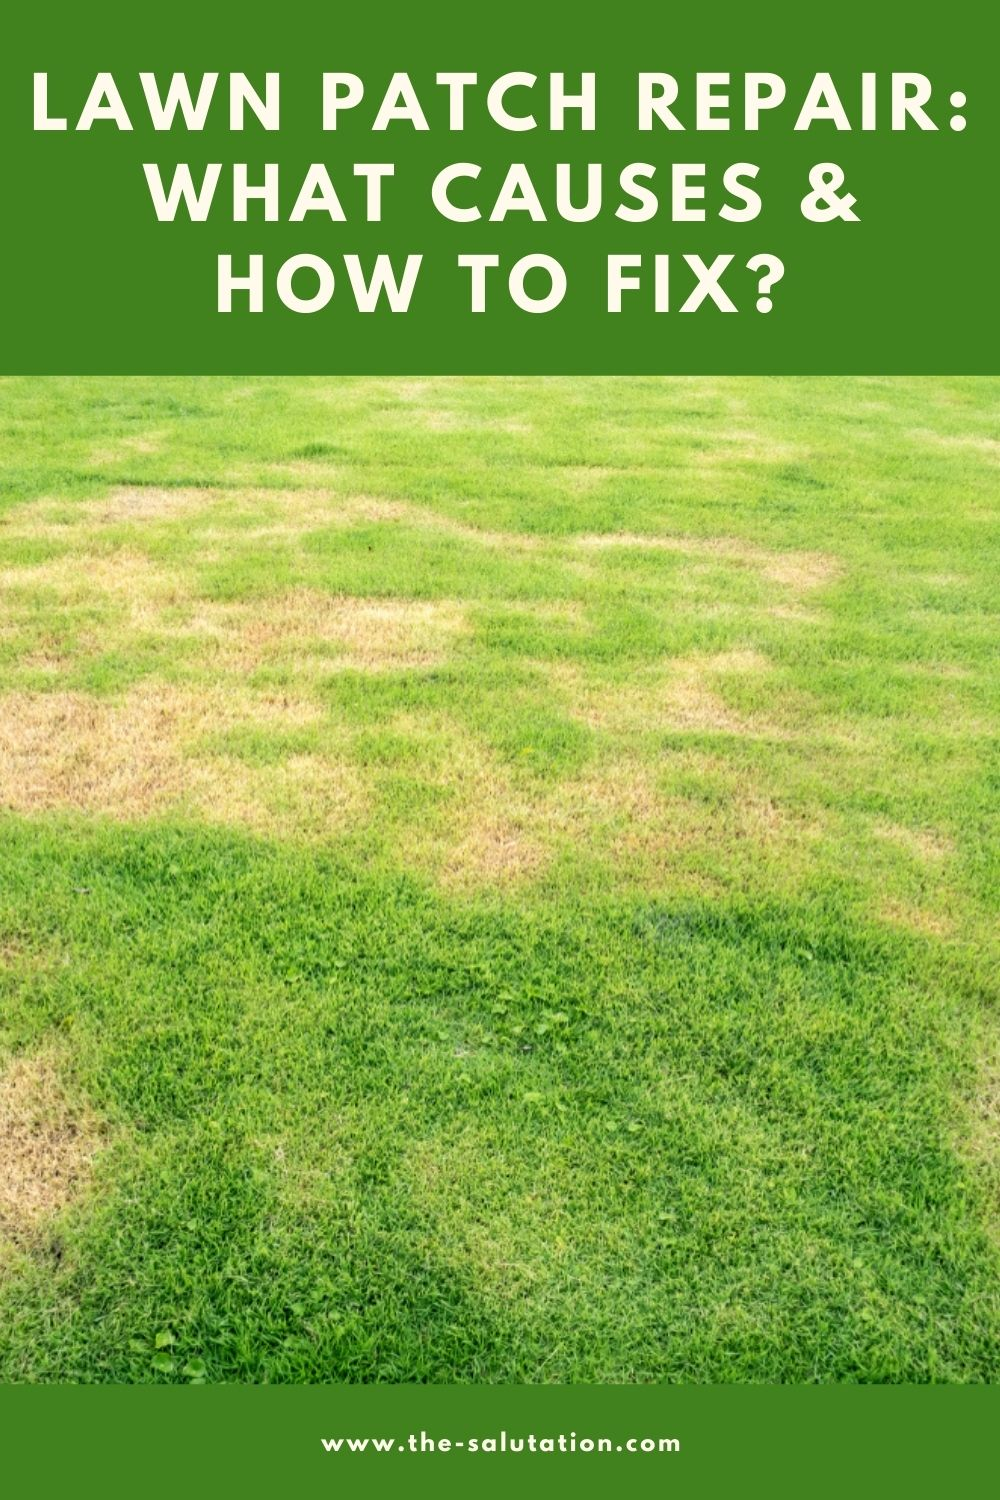 Lawn Patch Repair What Causes & How to Fix 2